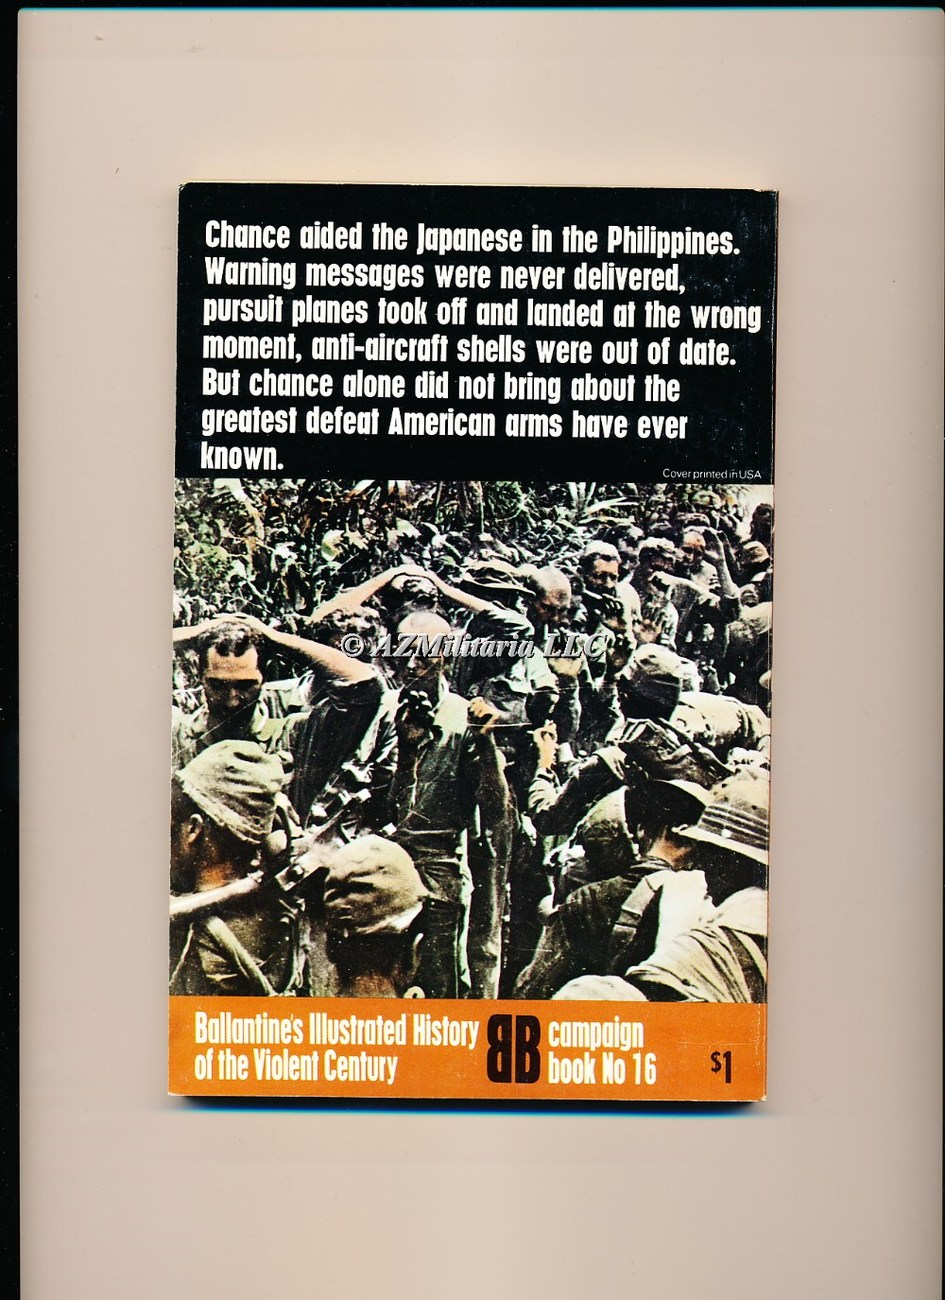 Fall of the Philippines (Campaign Book, No 16)